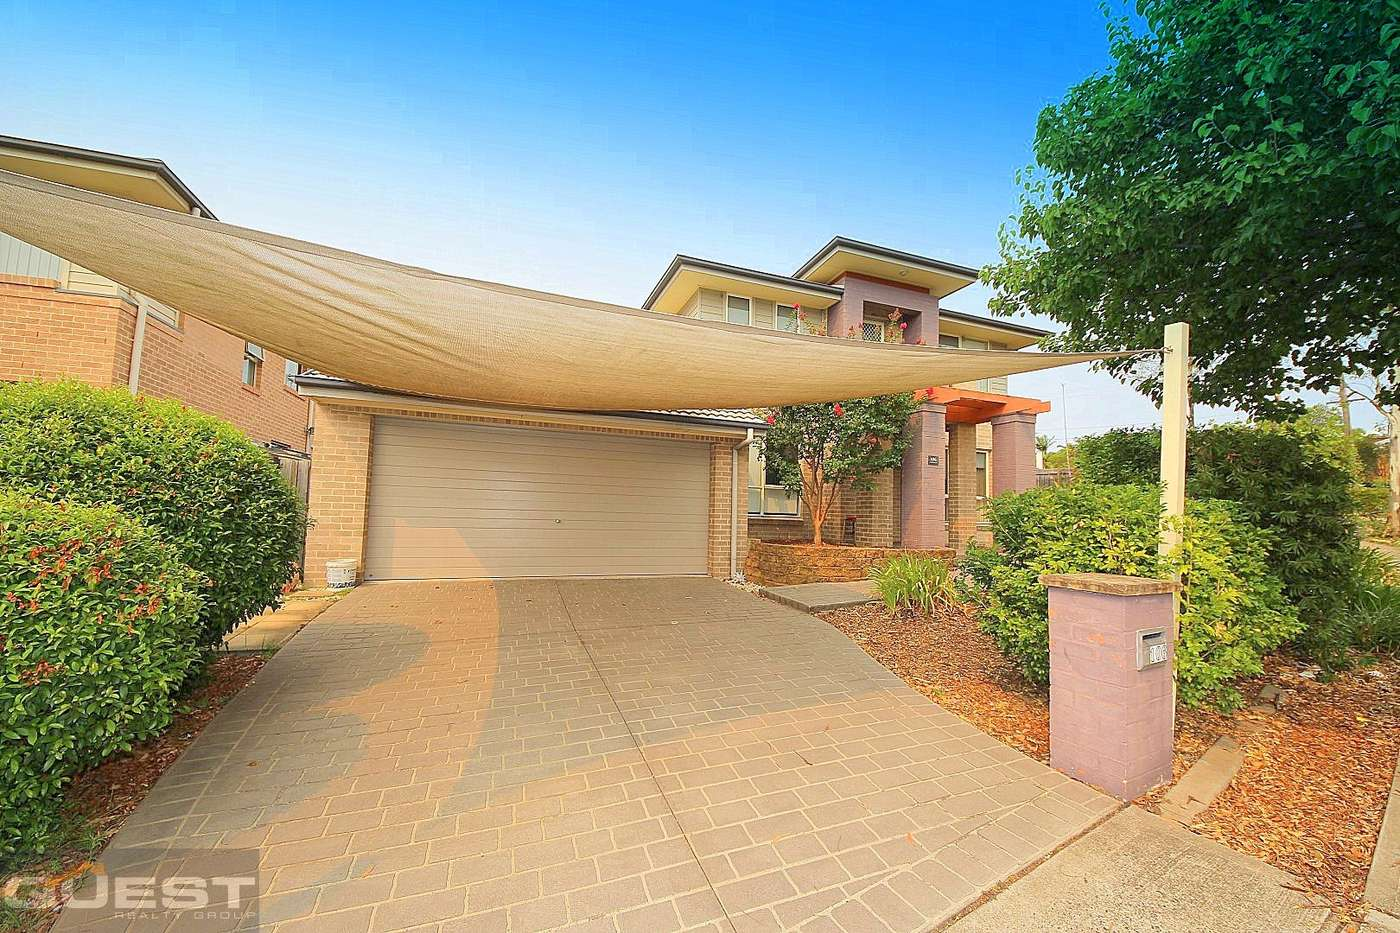 Main view of Homely house listing, 106 Stansfield Avenue, Bankstown, NSW 2200